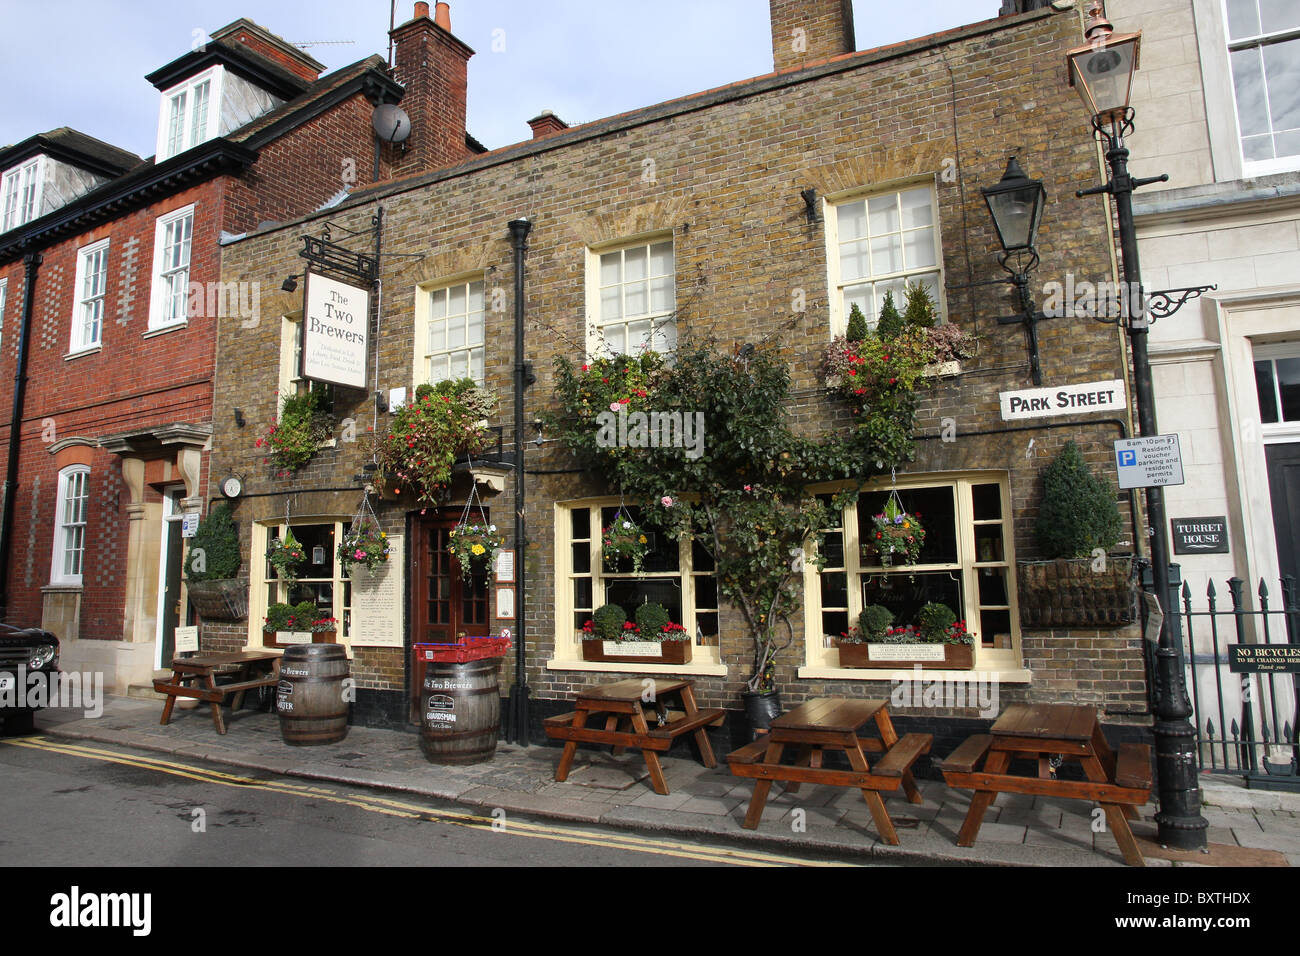 The Two Brewers Pub in Windsor - Stock Image